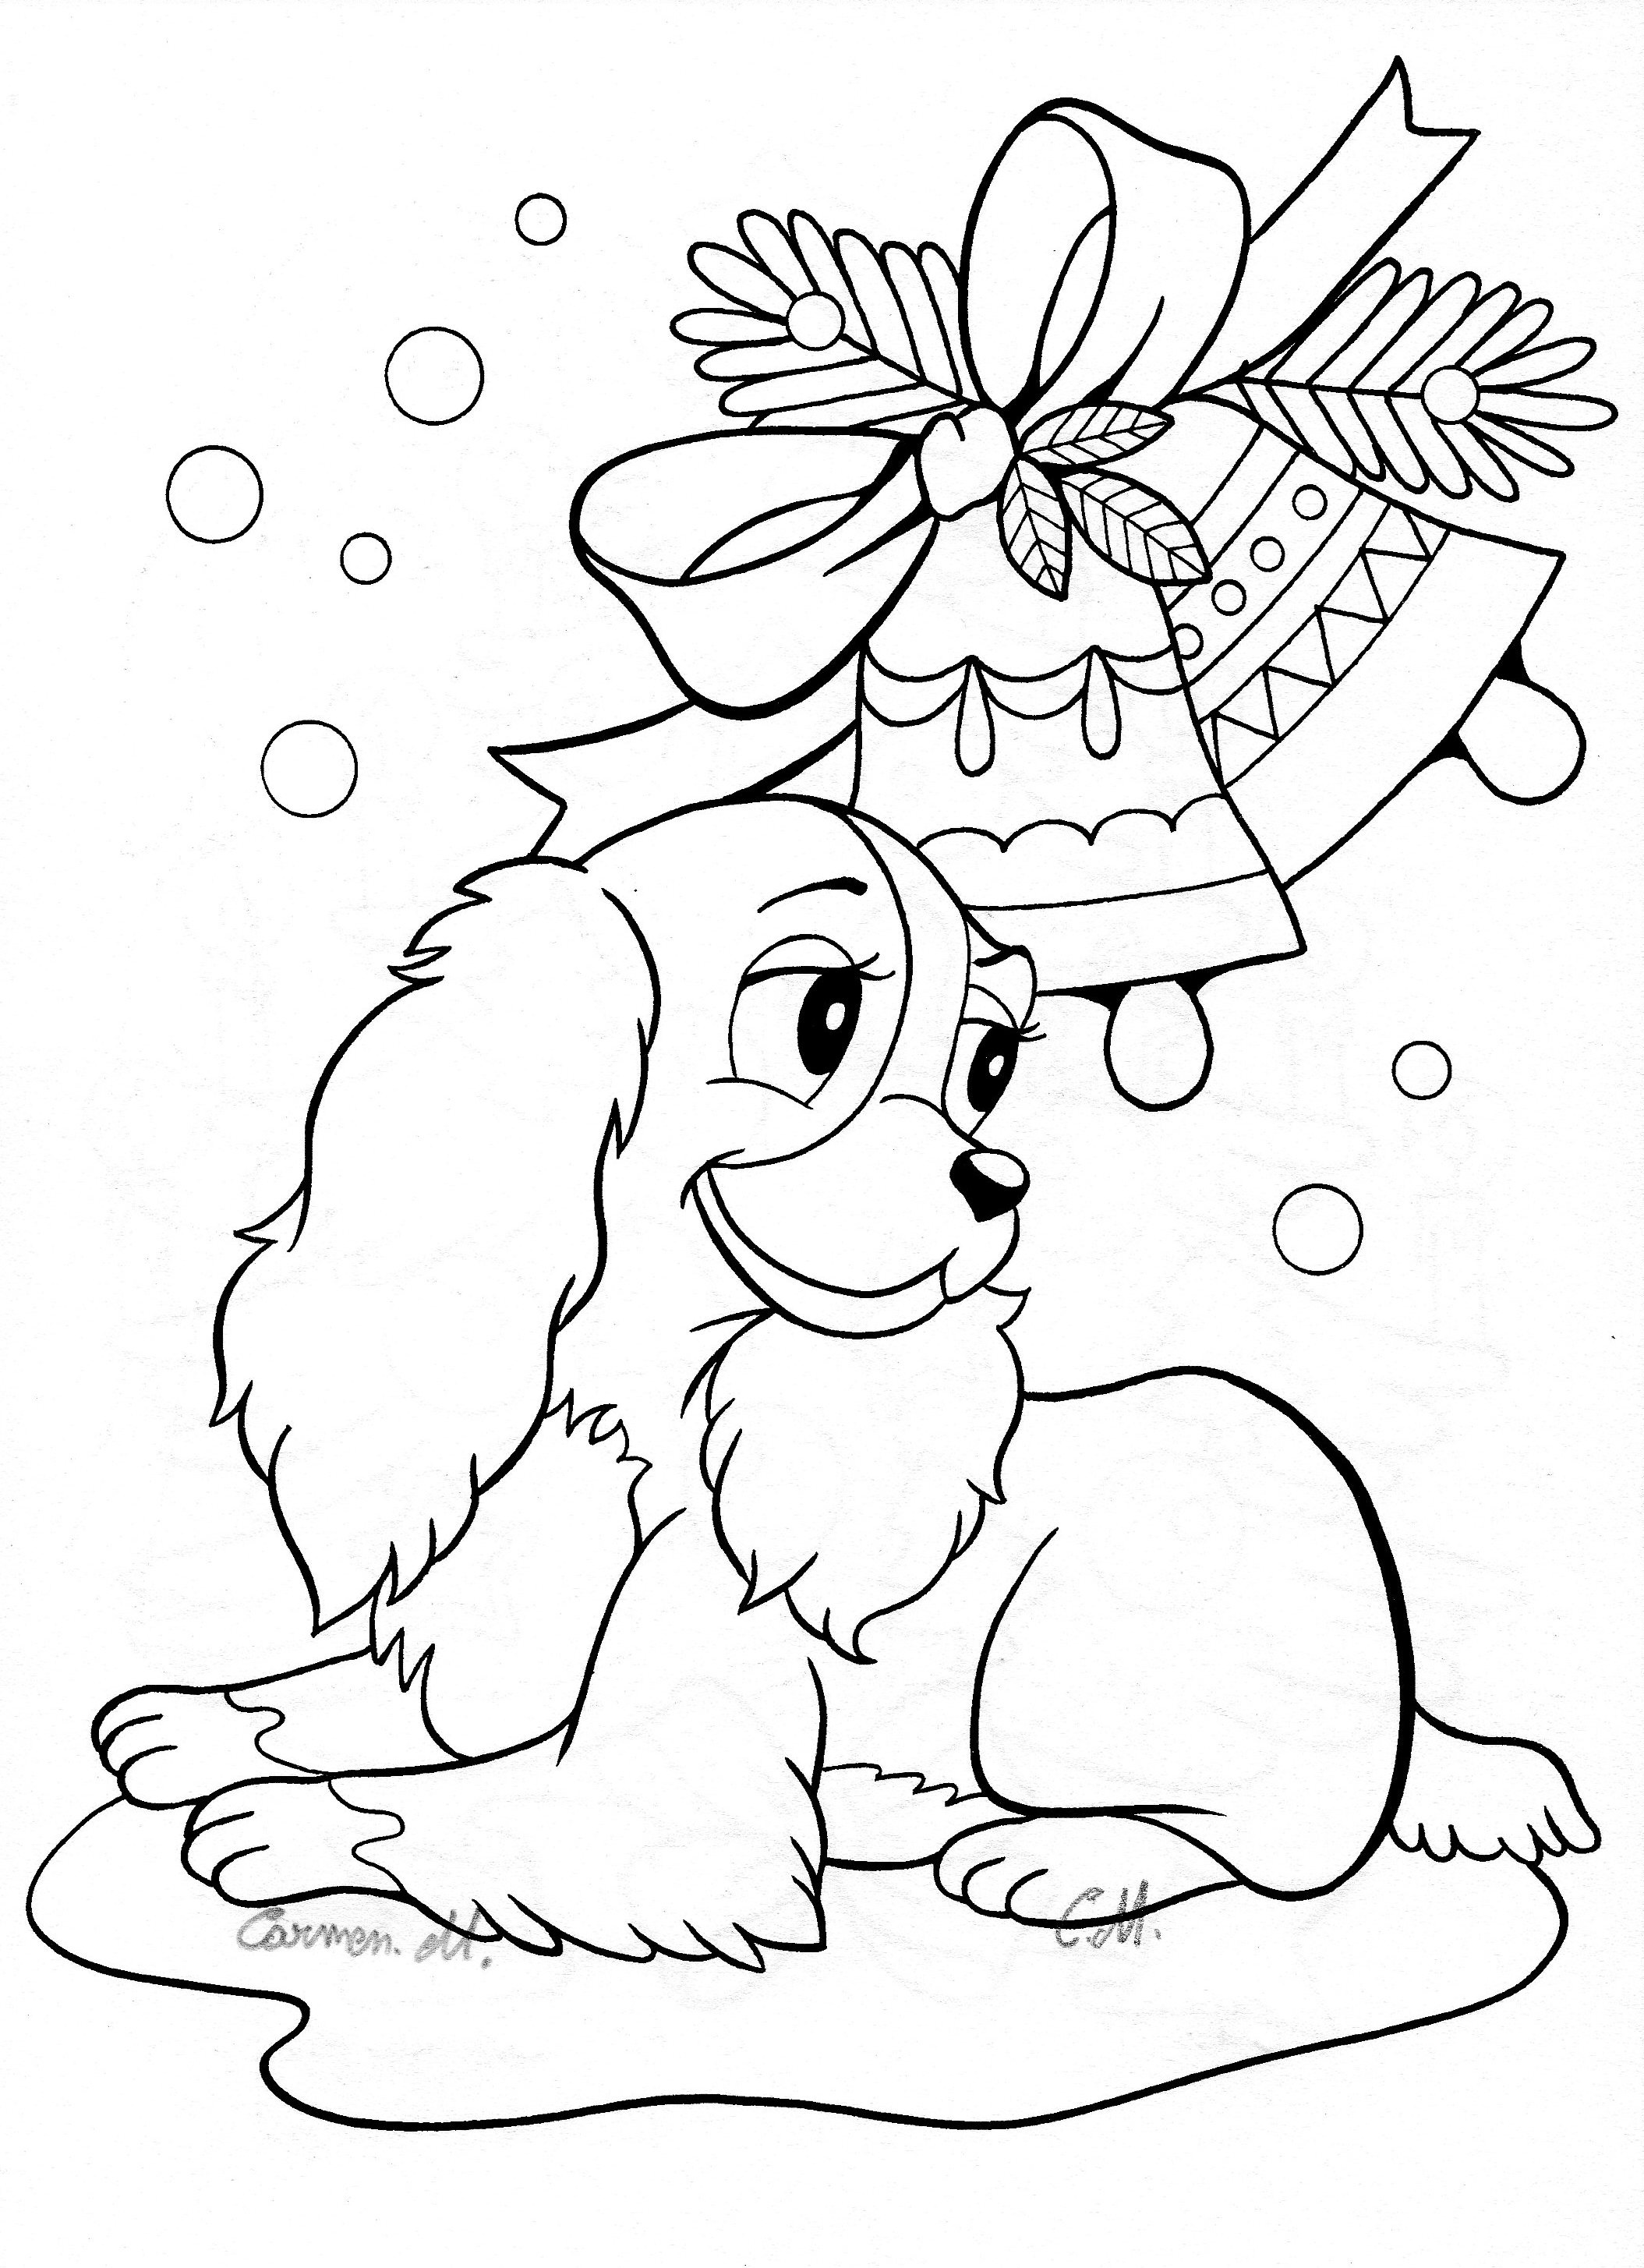 moose coloring pages moose coloring pages moose coloring pages